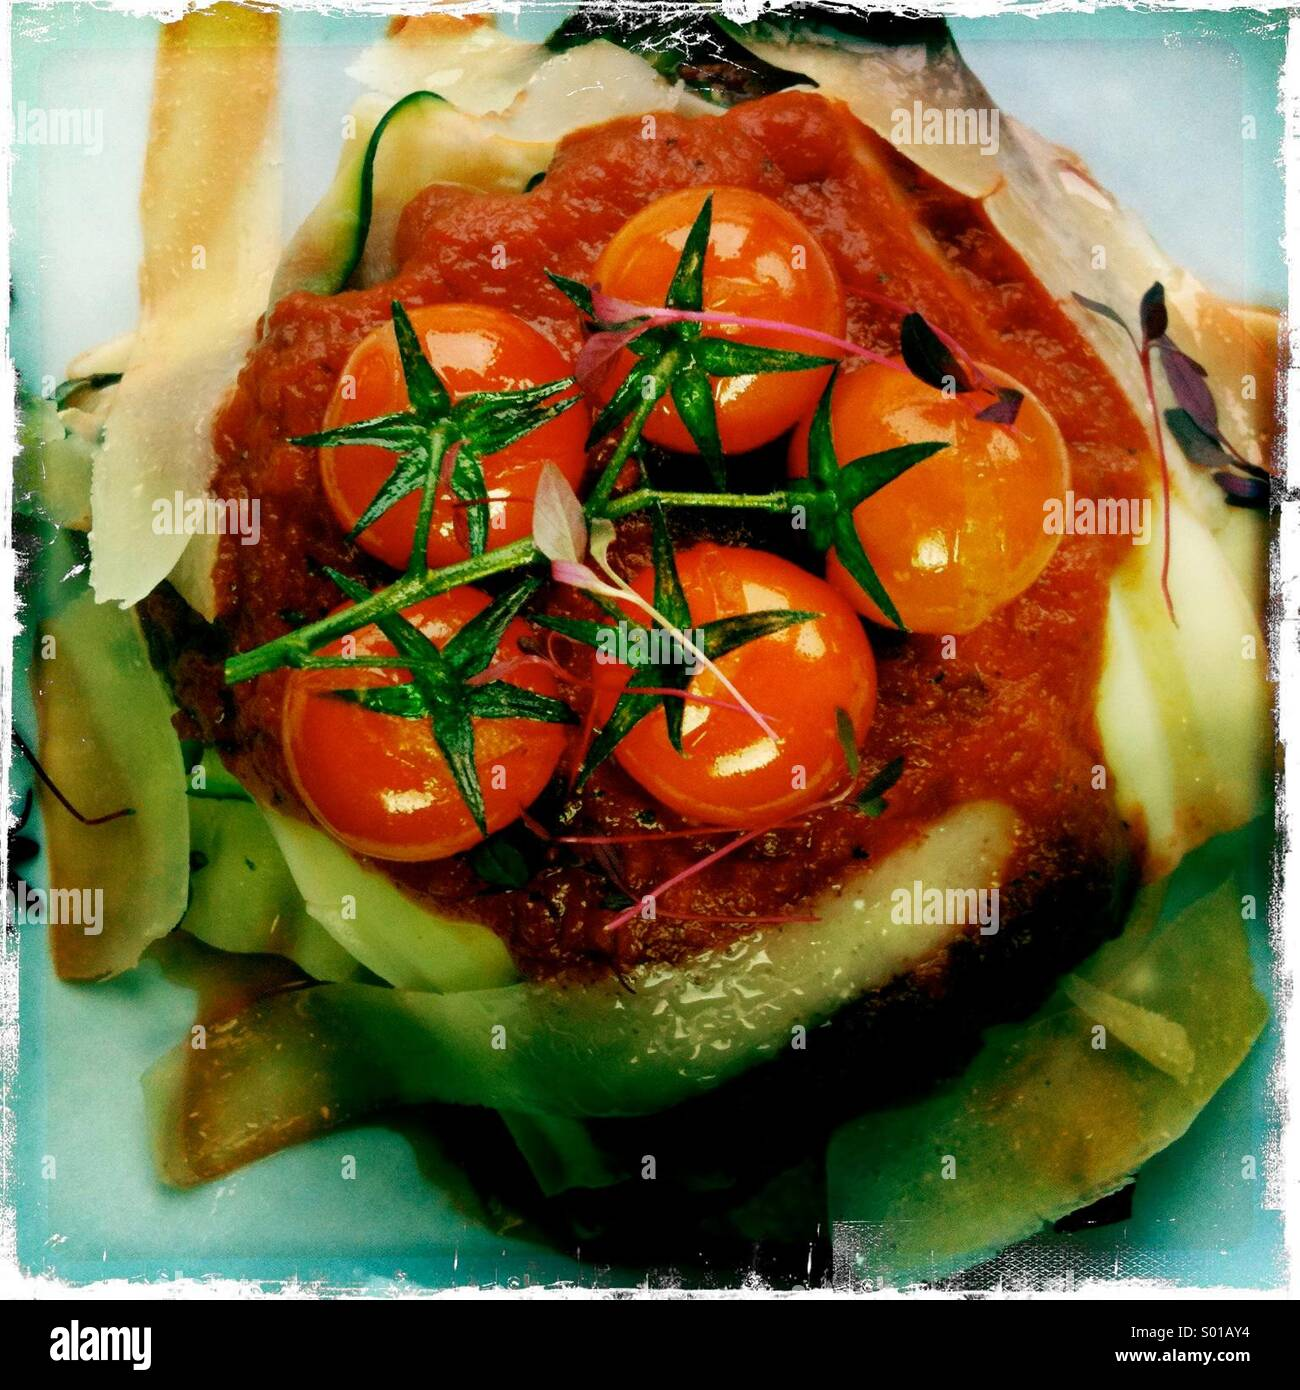 Open vegetable lassagne eith rich tomatoe and herb sauce served with garlic slice - Stock Image